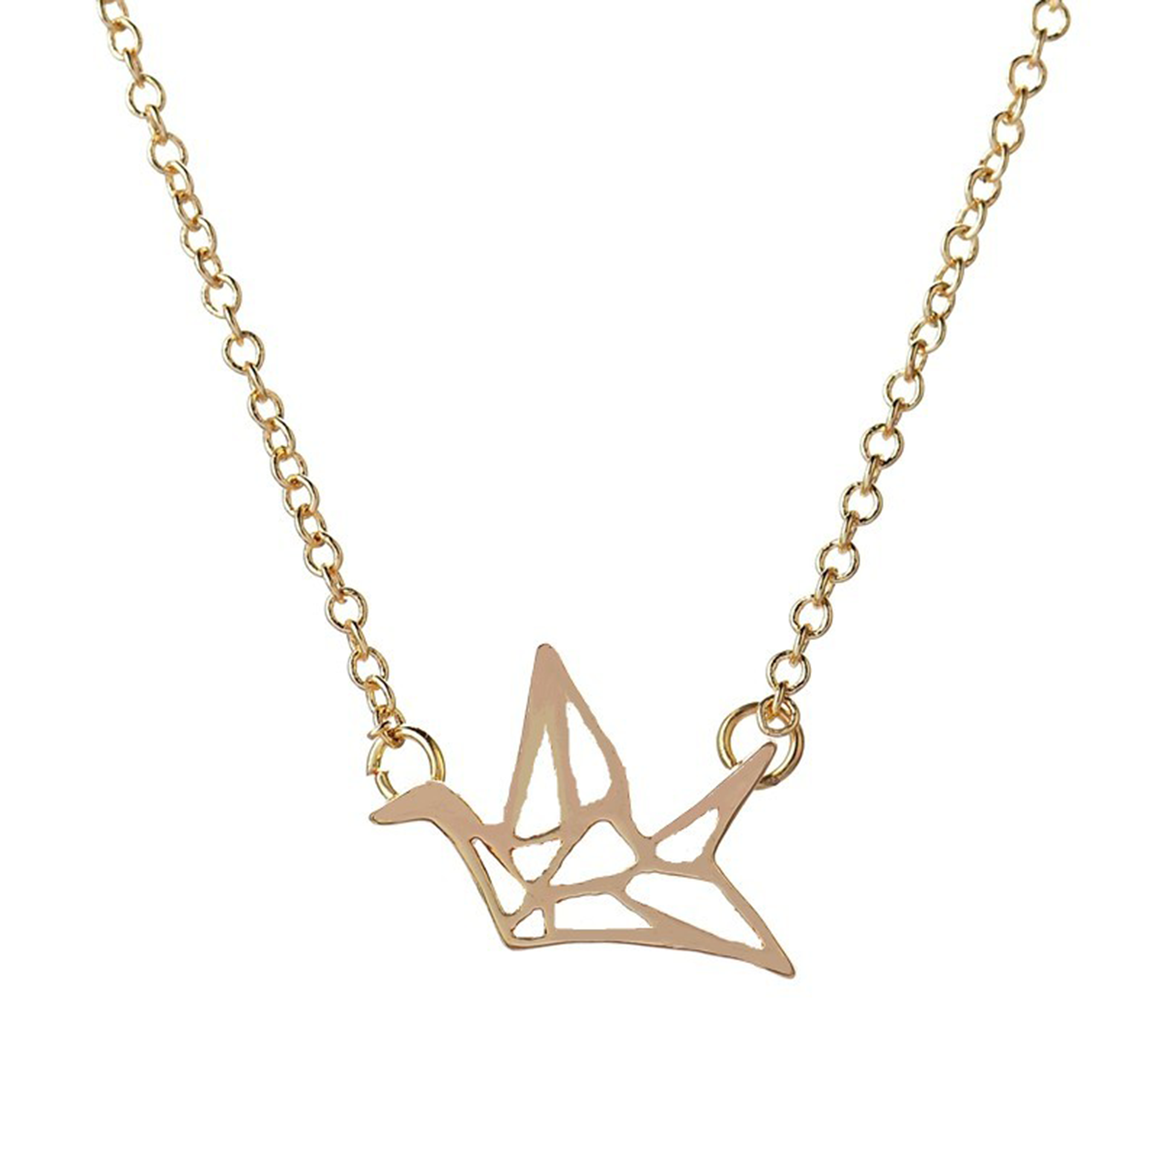 Origami Crane Bird Necklace